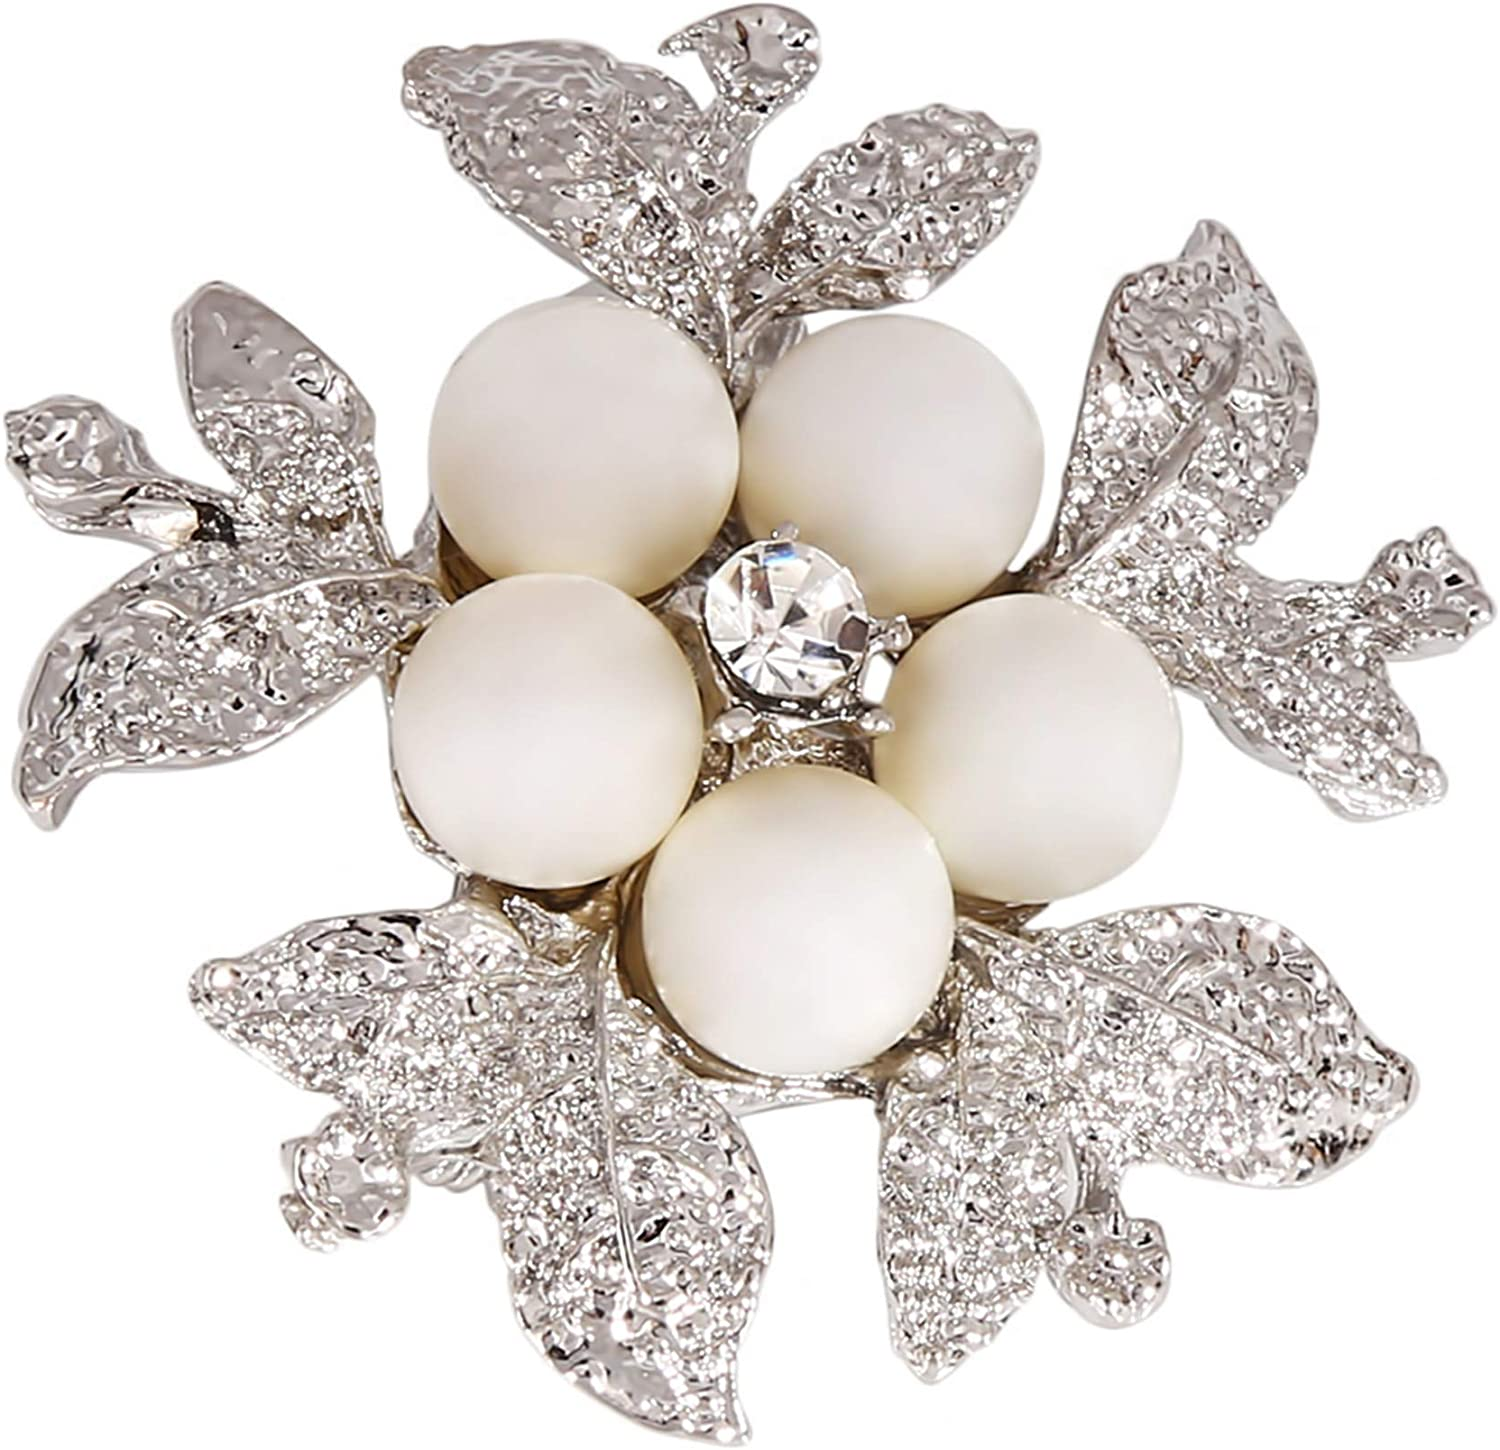 LKEEP White Imitation Pearl Brooch Rhinestone Flower Pin Scarf Buckle Clothing Accessories Corsage for Women